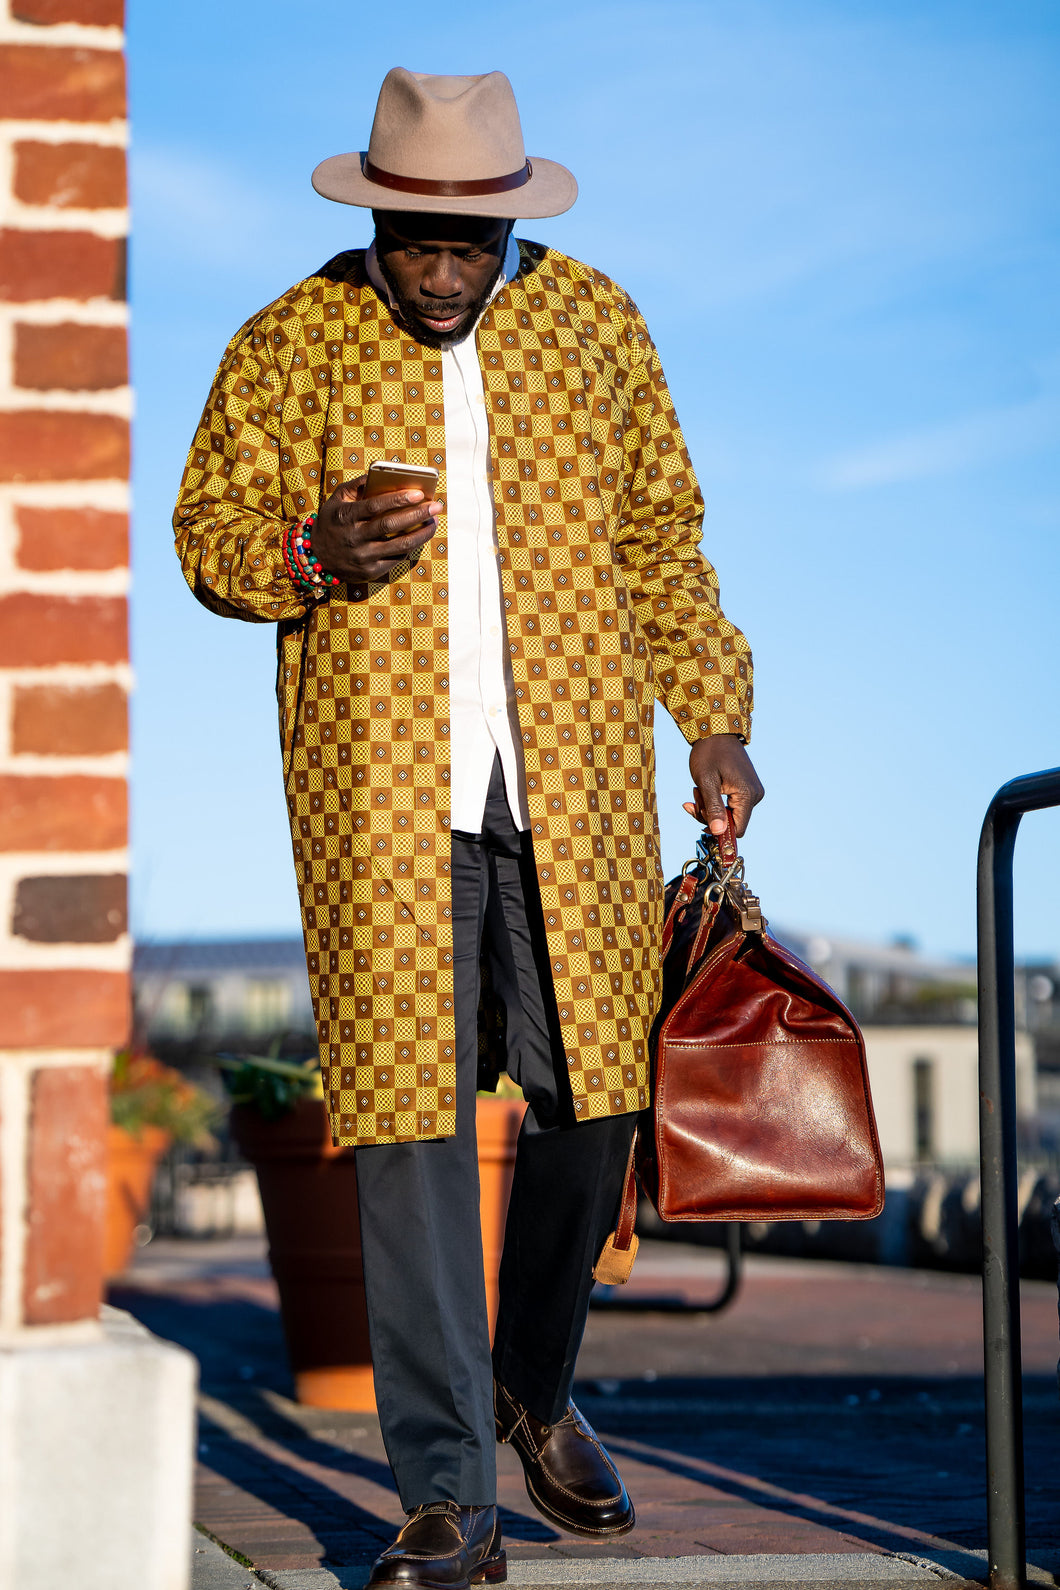 AdeBayo (The crown met with happiness) - (Brown/Yellow)